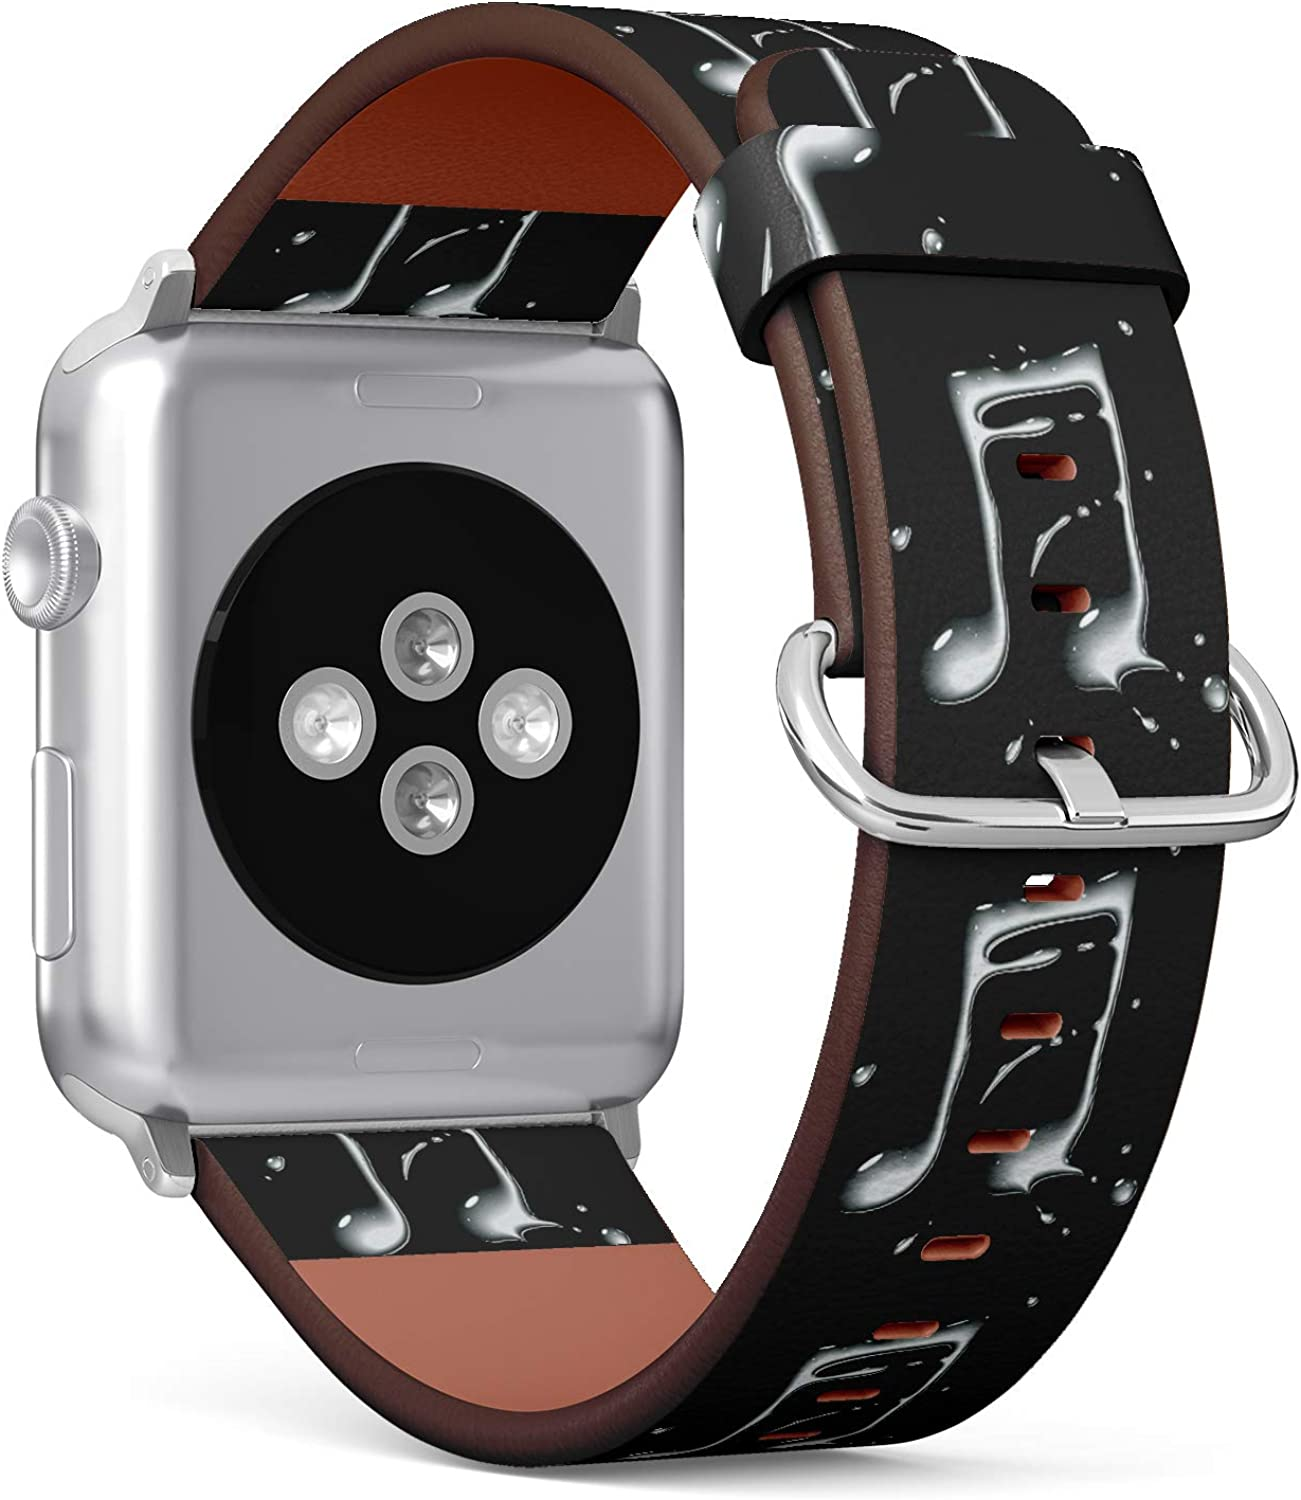 (Water Splash Music Note) Patterned Leather Wristband Strap for Apple Watch Series 4/3/2/1 gen,Replacement for iWatch 42mm / 44mm Bands